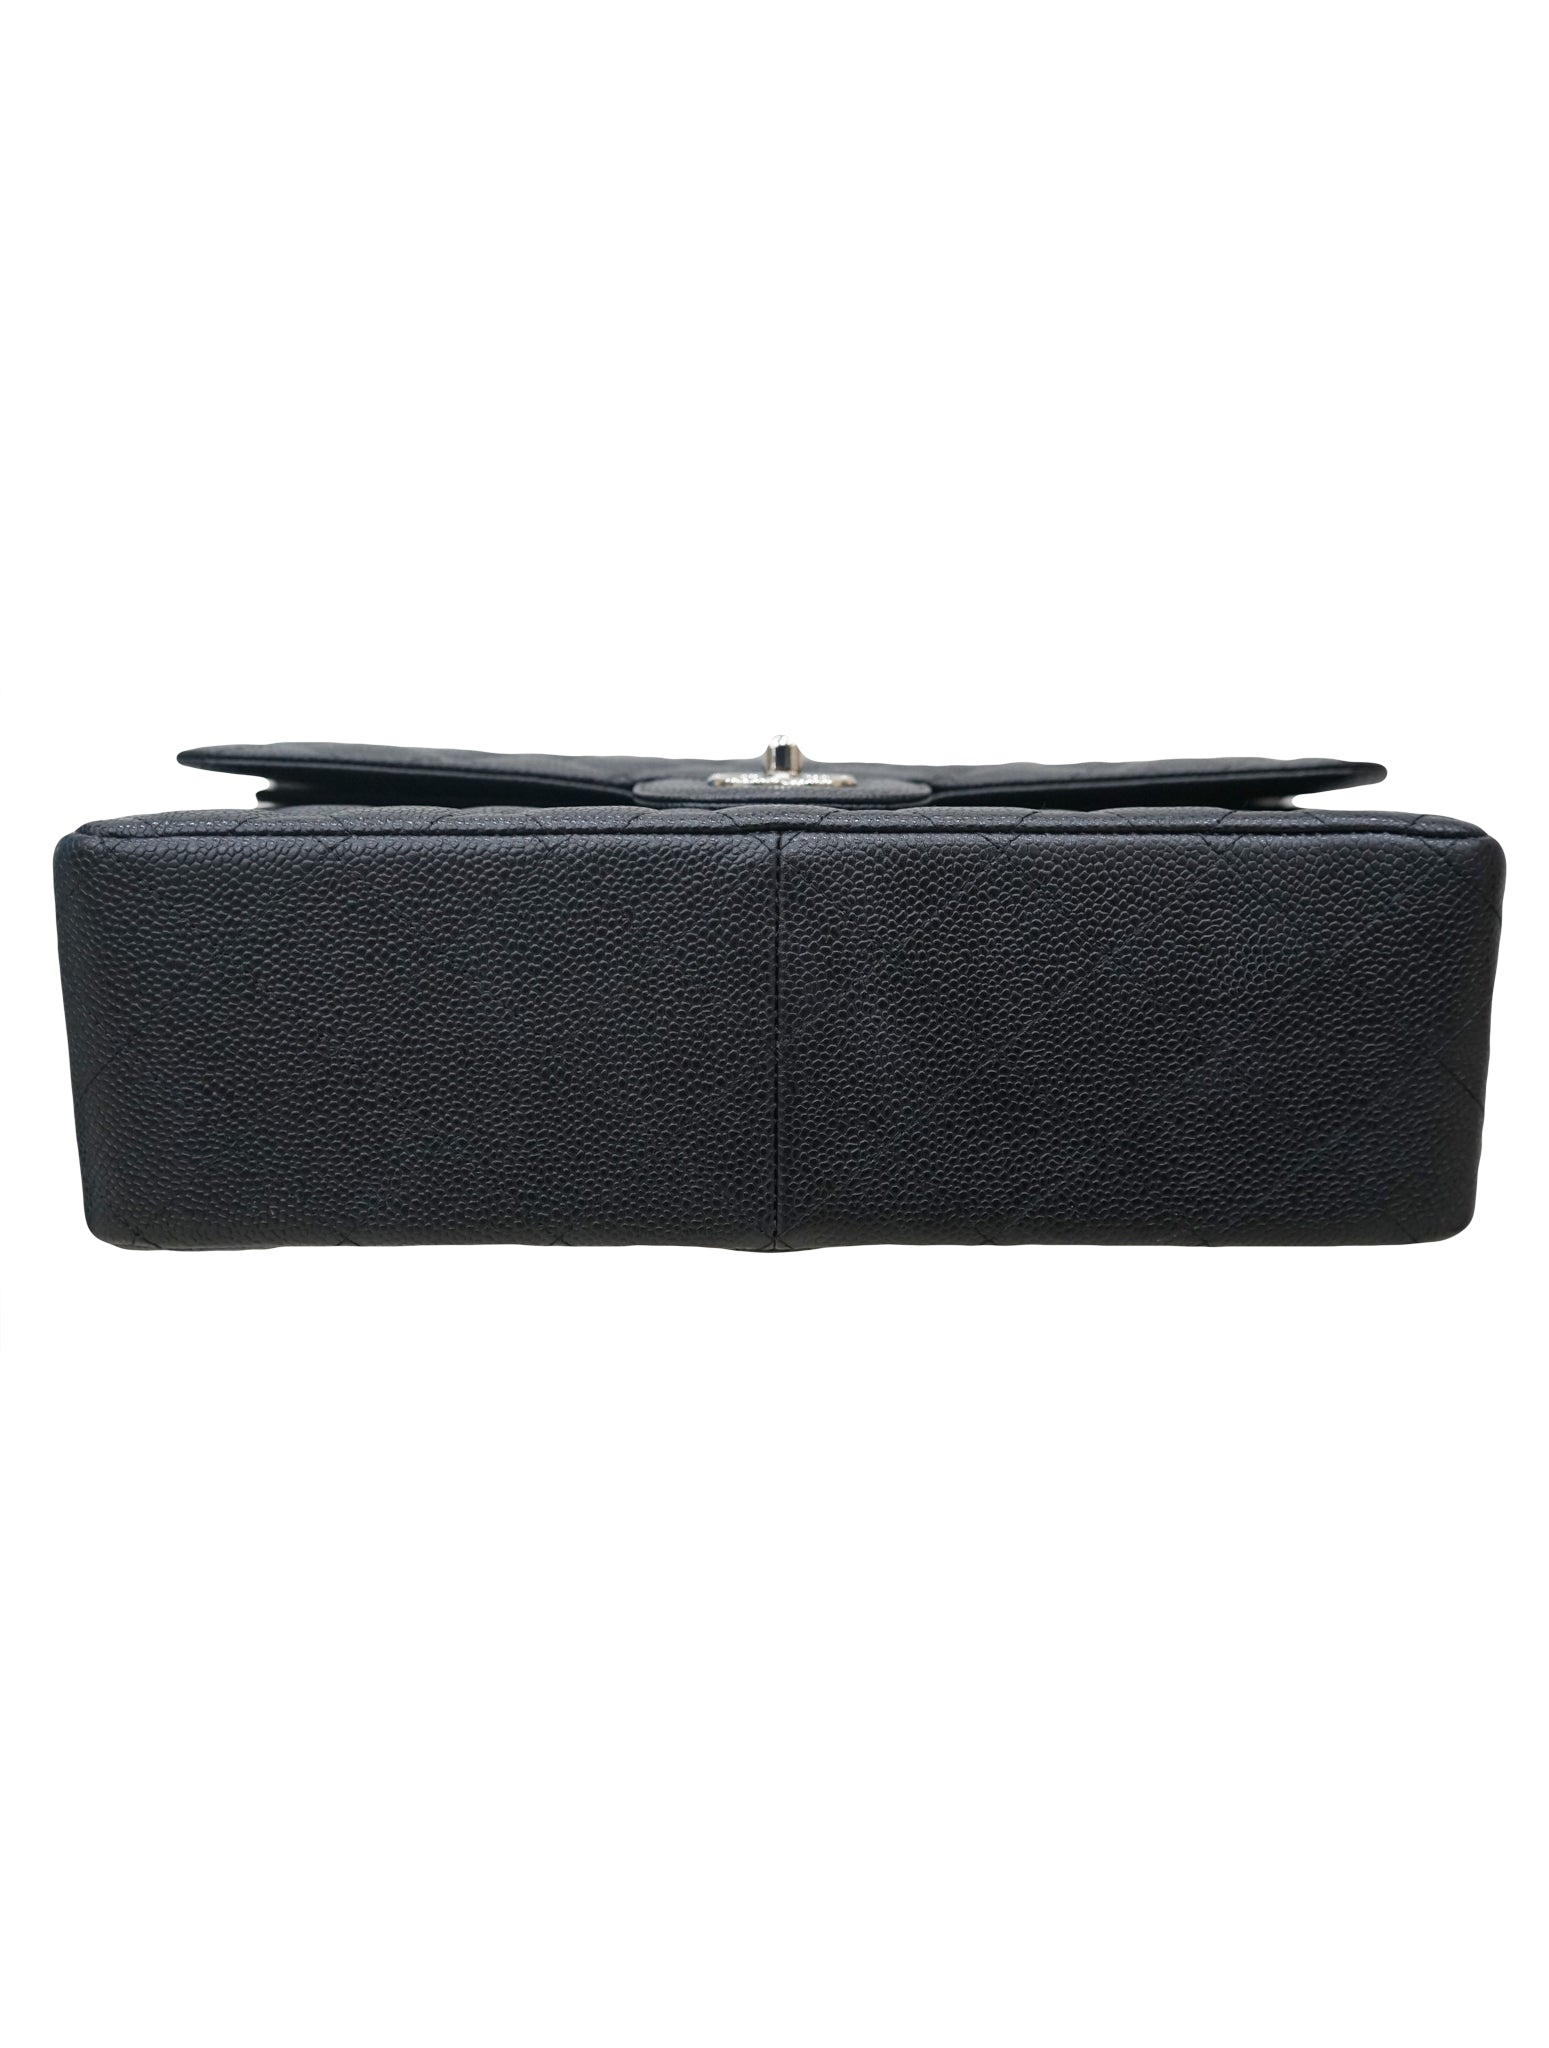 CAVIAR LEATHER CLASSIC DOUBLE FLAP BAG